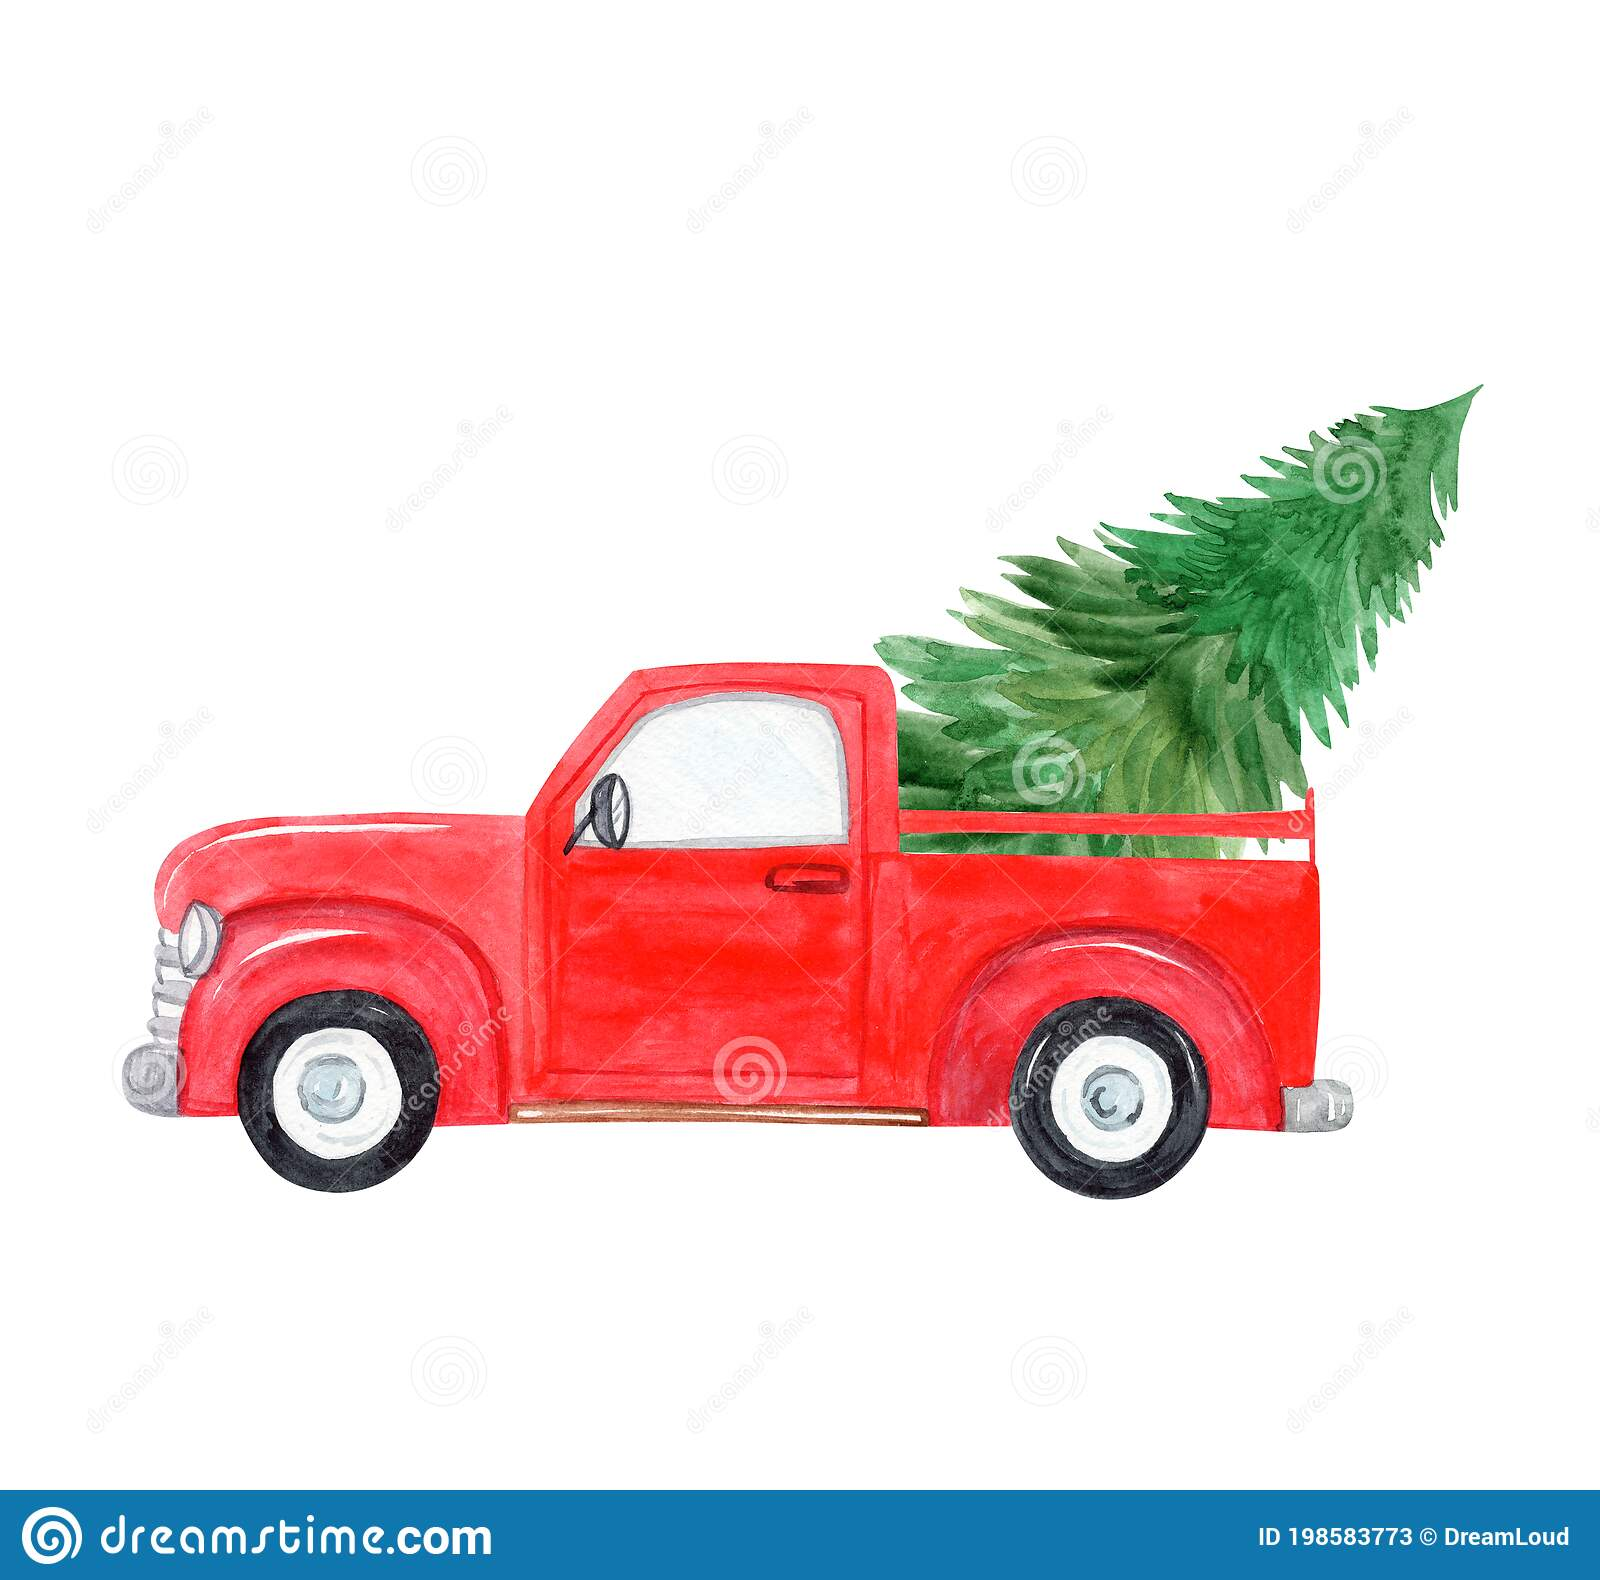 Red Truck Christmas Tree Stock Illustrations 845 Red Truck Christmas Tree Stock Illustrations Vectors Clipart Dreamstime